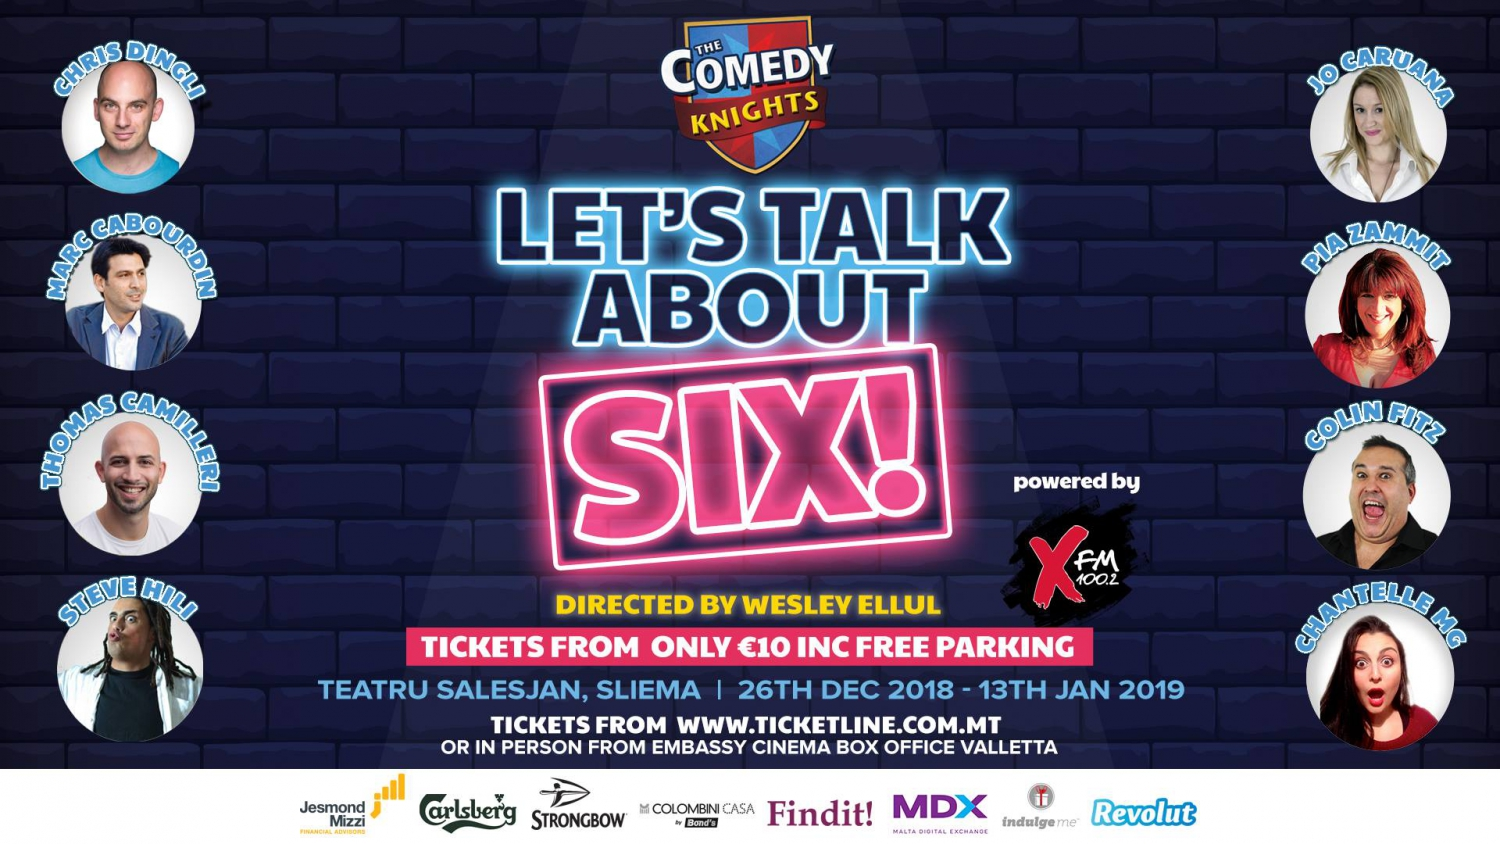 The Comedy Knights: Let's Talk About SIX!